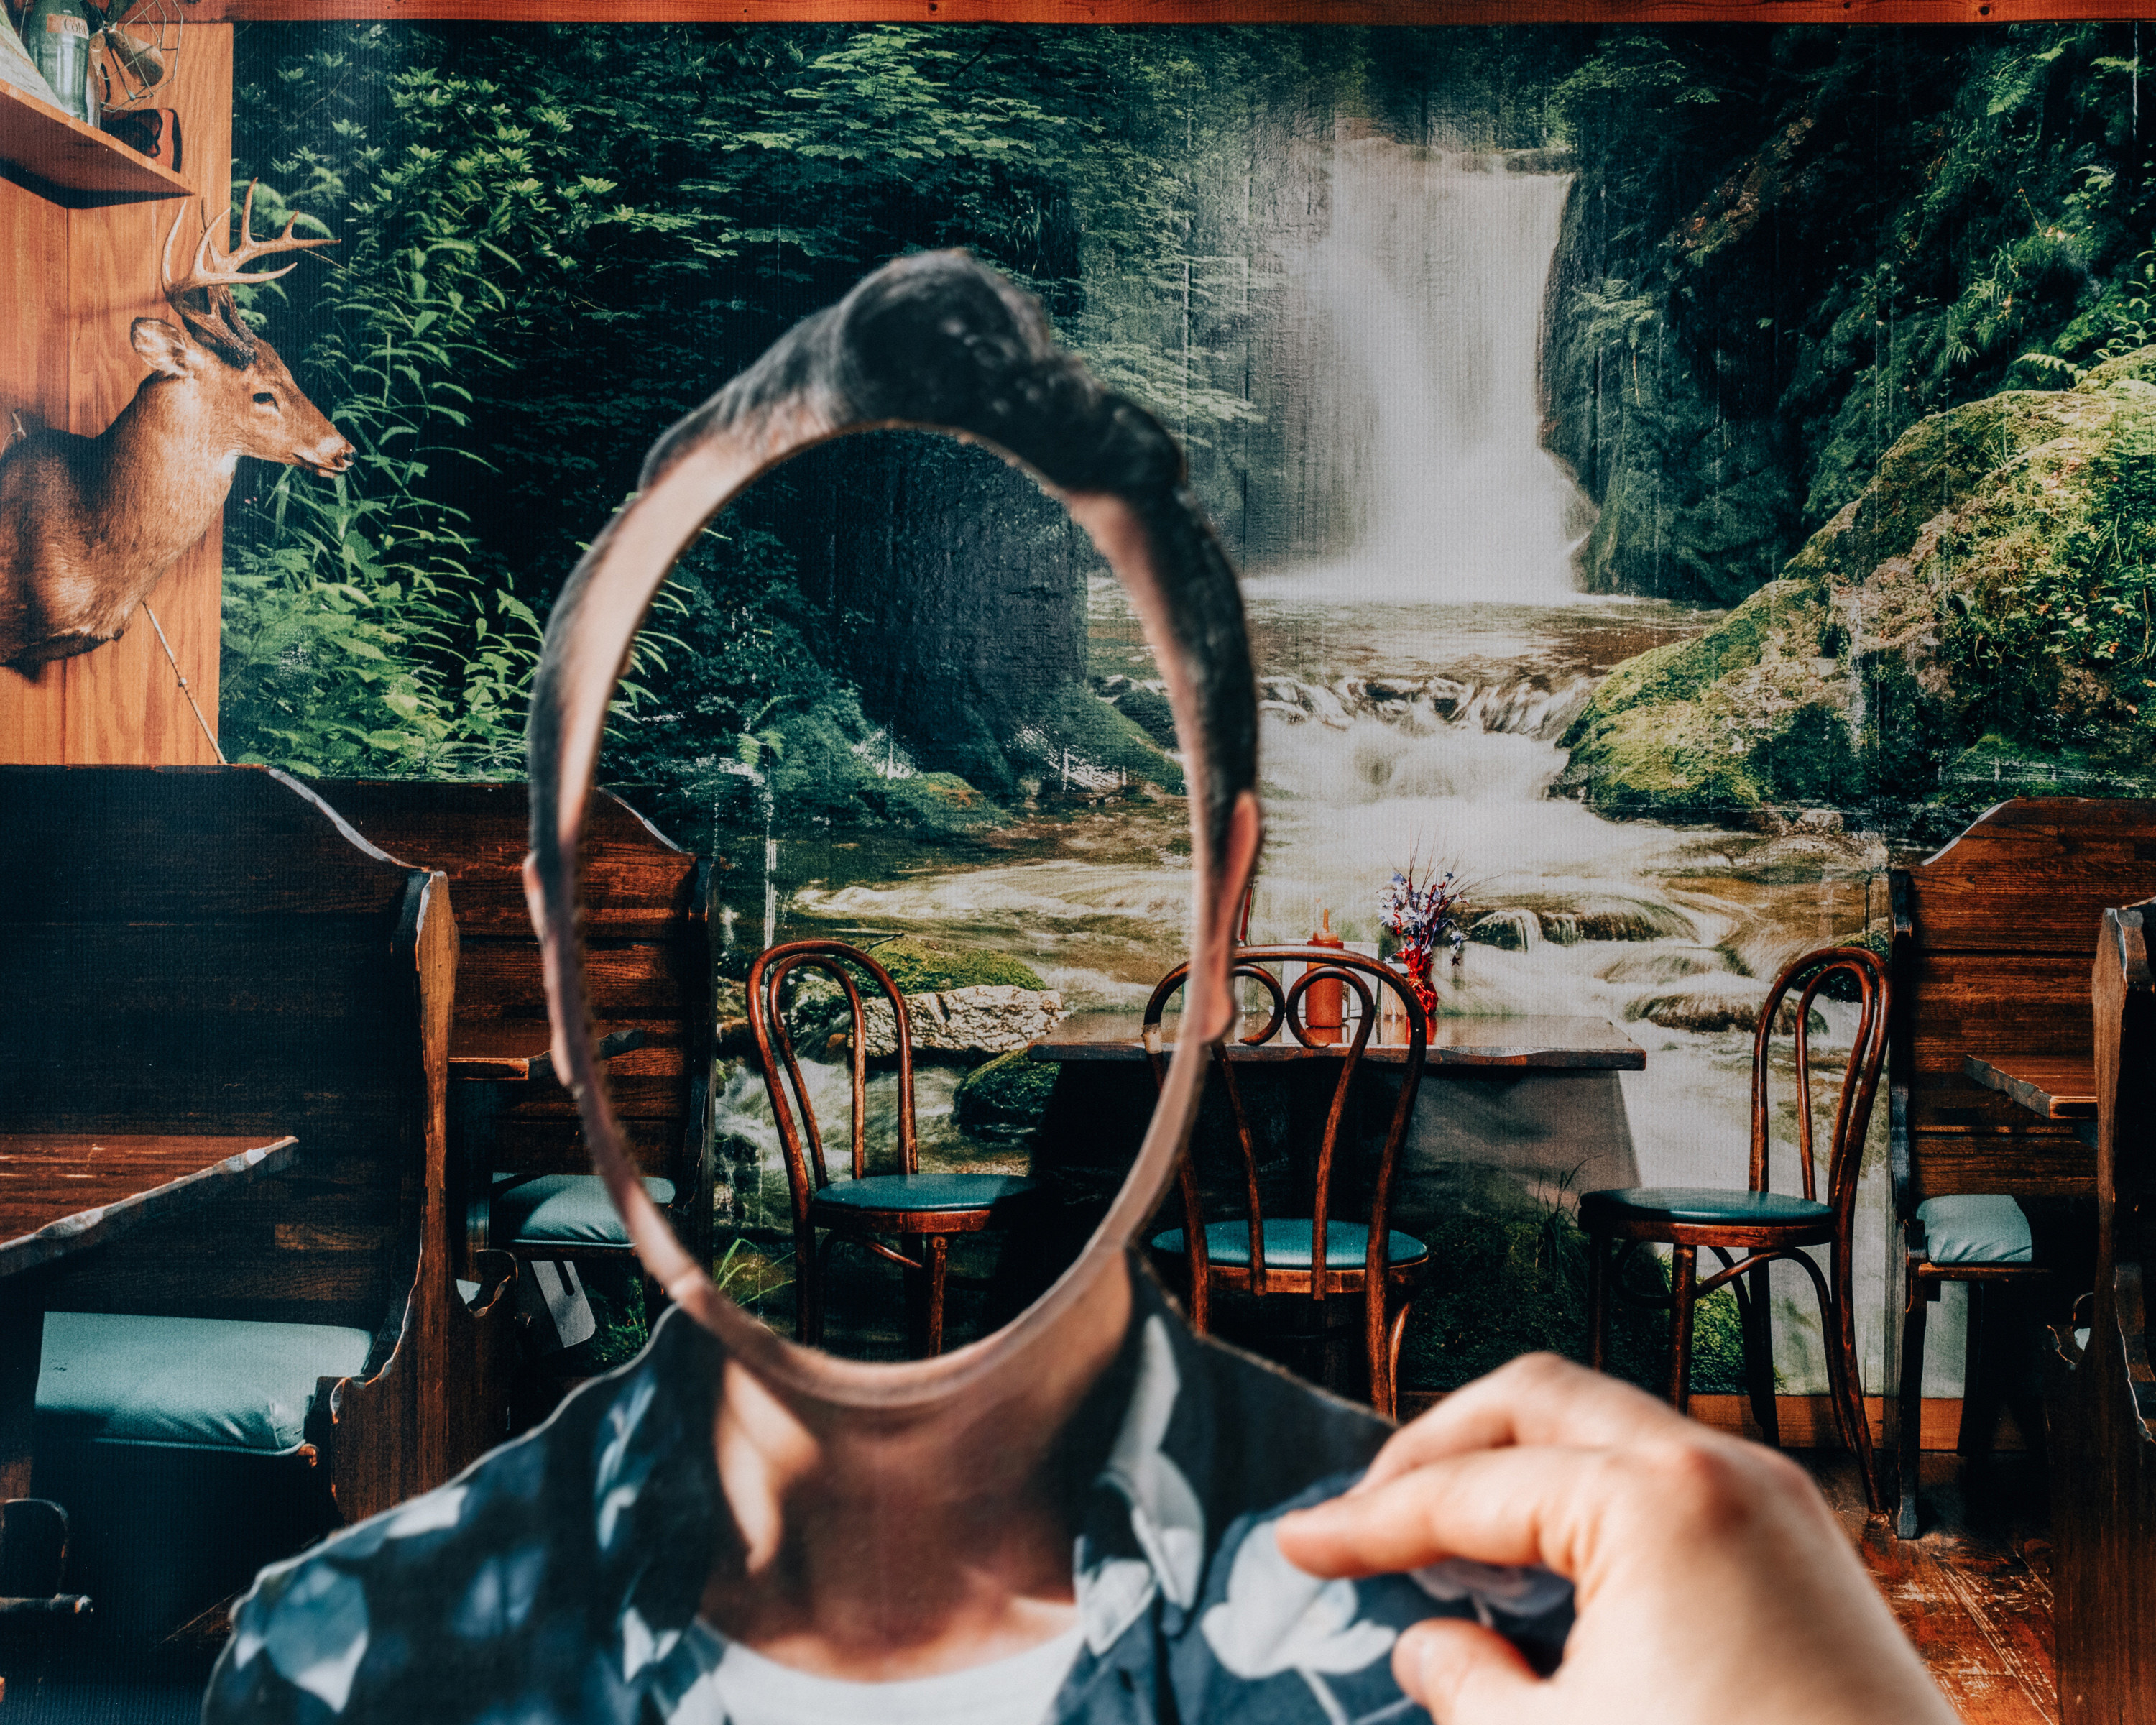 A photo collage shows someone's hand on a person's shoulder but with their face missing, revealing the background, a placid creek and waterfall scene, which appears to be wallpaper in a restaurant